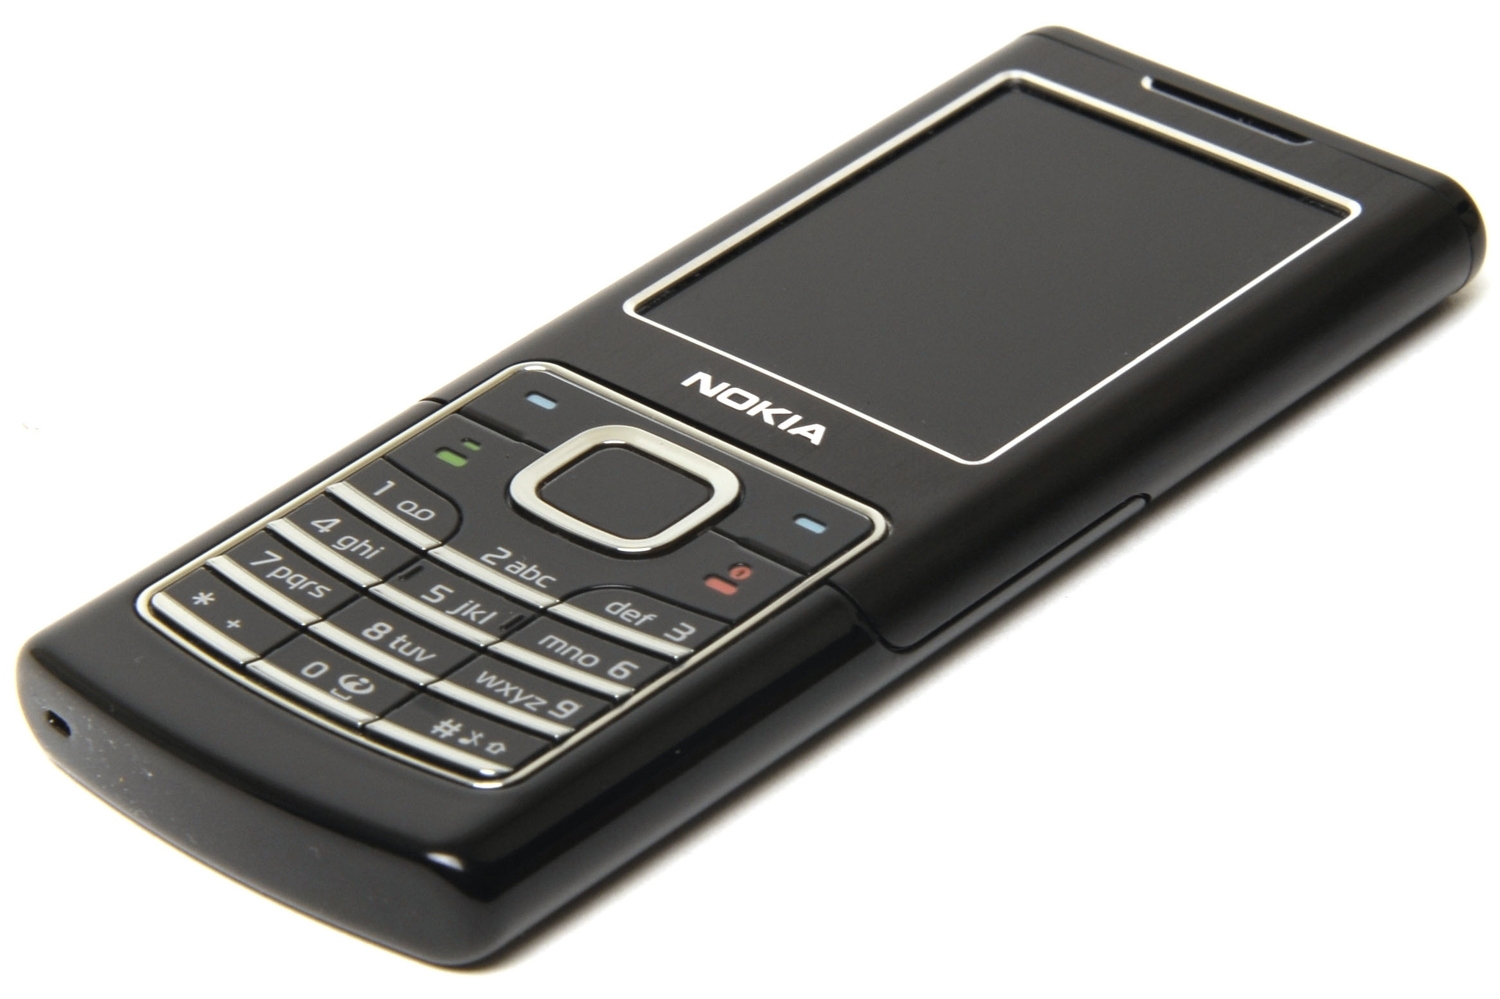 nokia 6500 classic review mobile phones 3g mobile. Black Bedroom Furniture Sets. Home Design Ideas